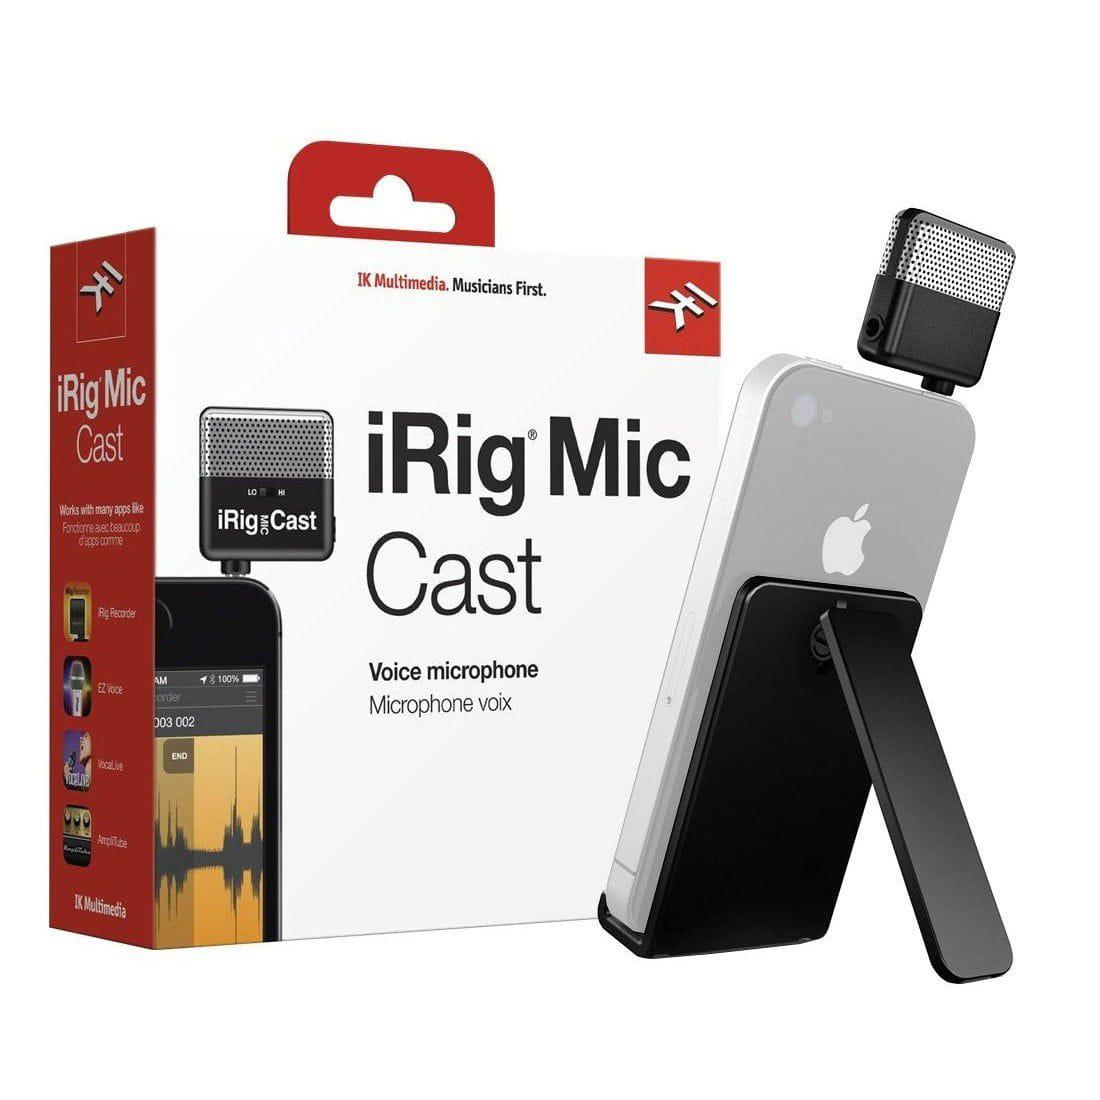 Microfone Portátil Ultra-Compacto iRig Mic Cast (iPhone/iPod Touch/iPad/Android Smartphones/Tablets)